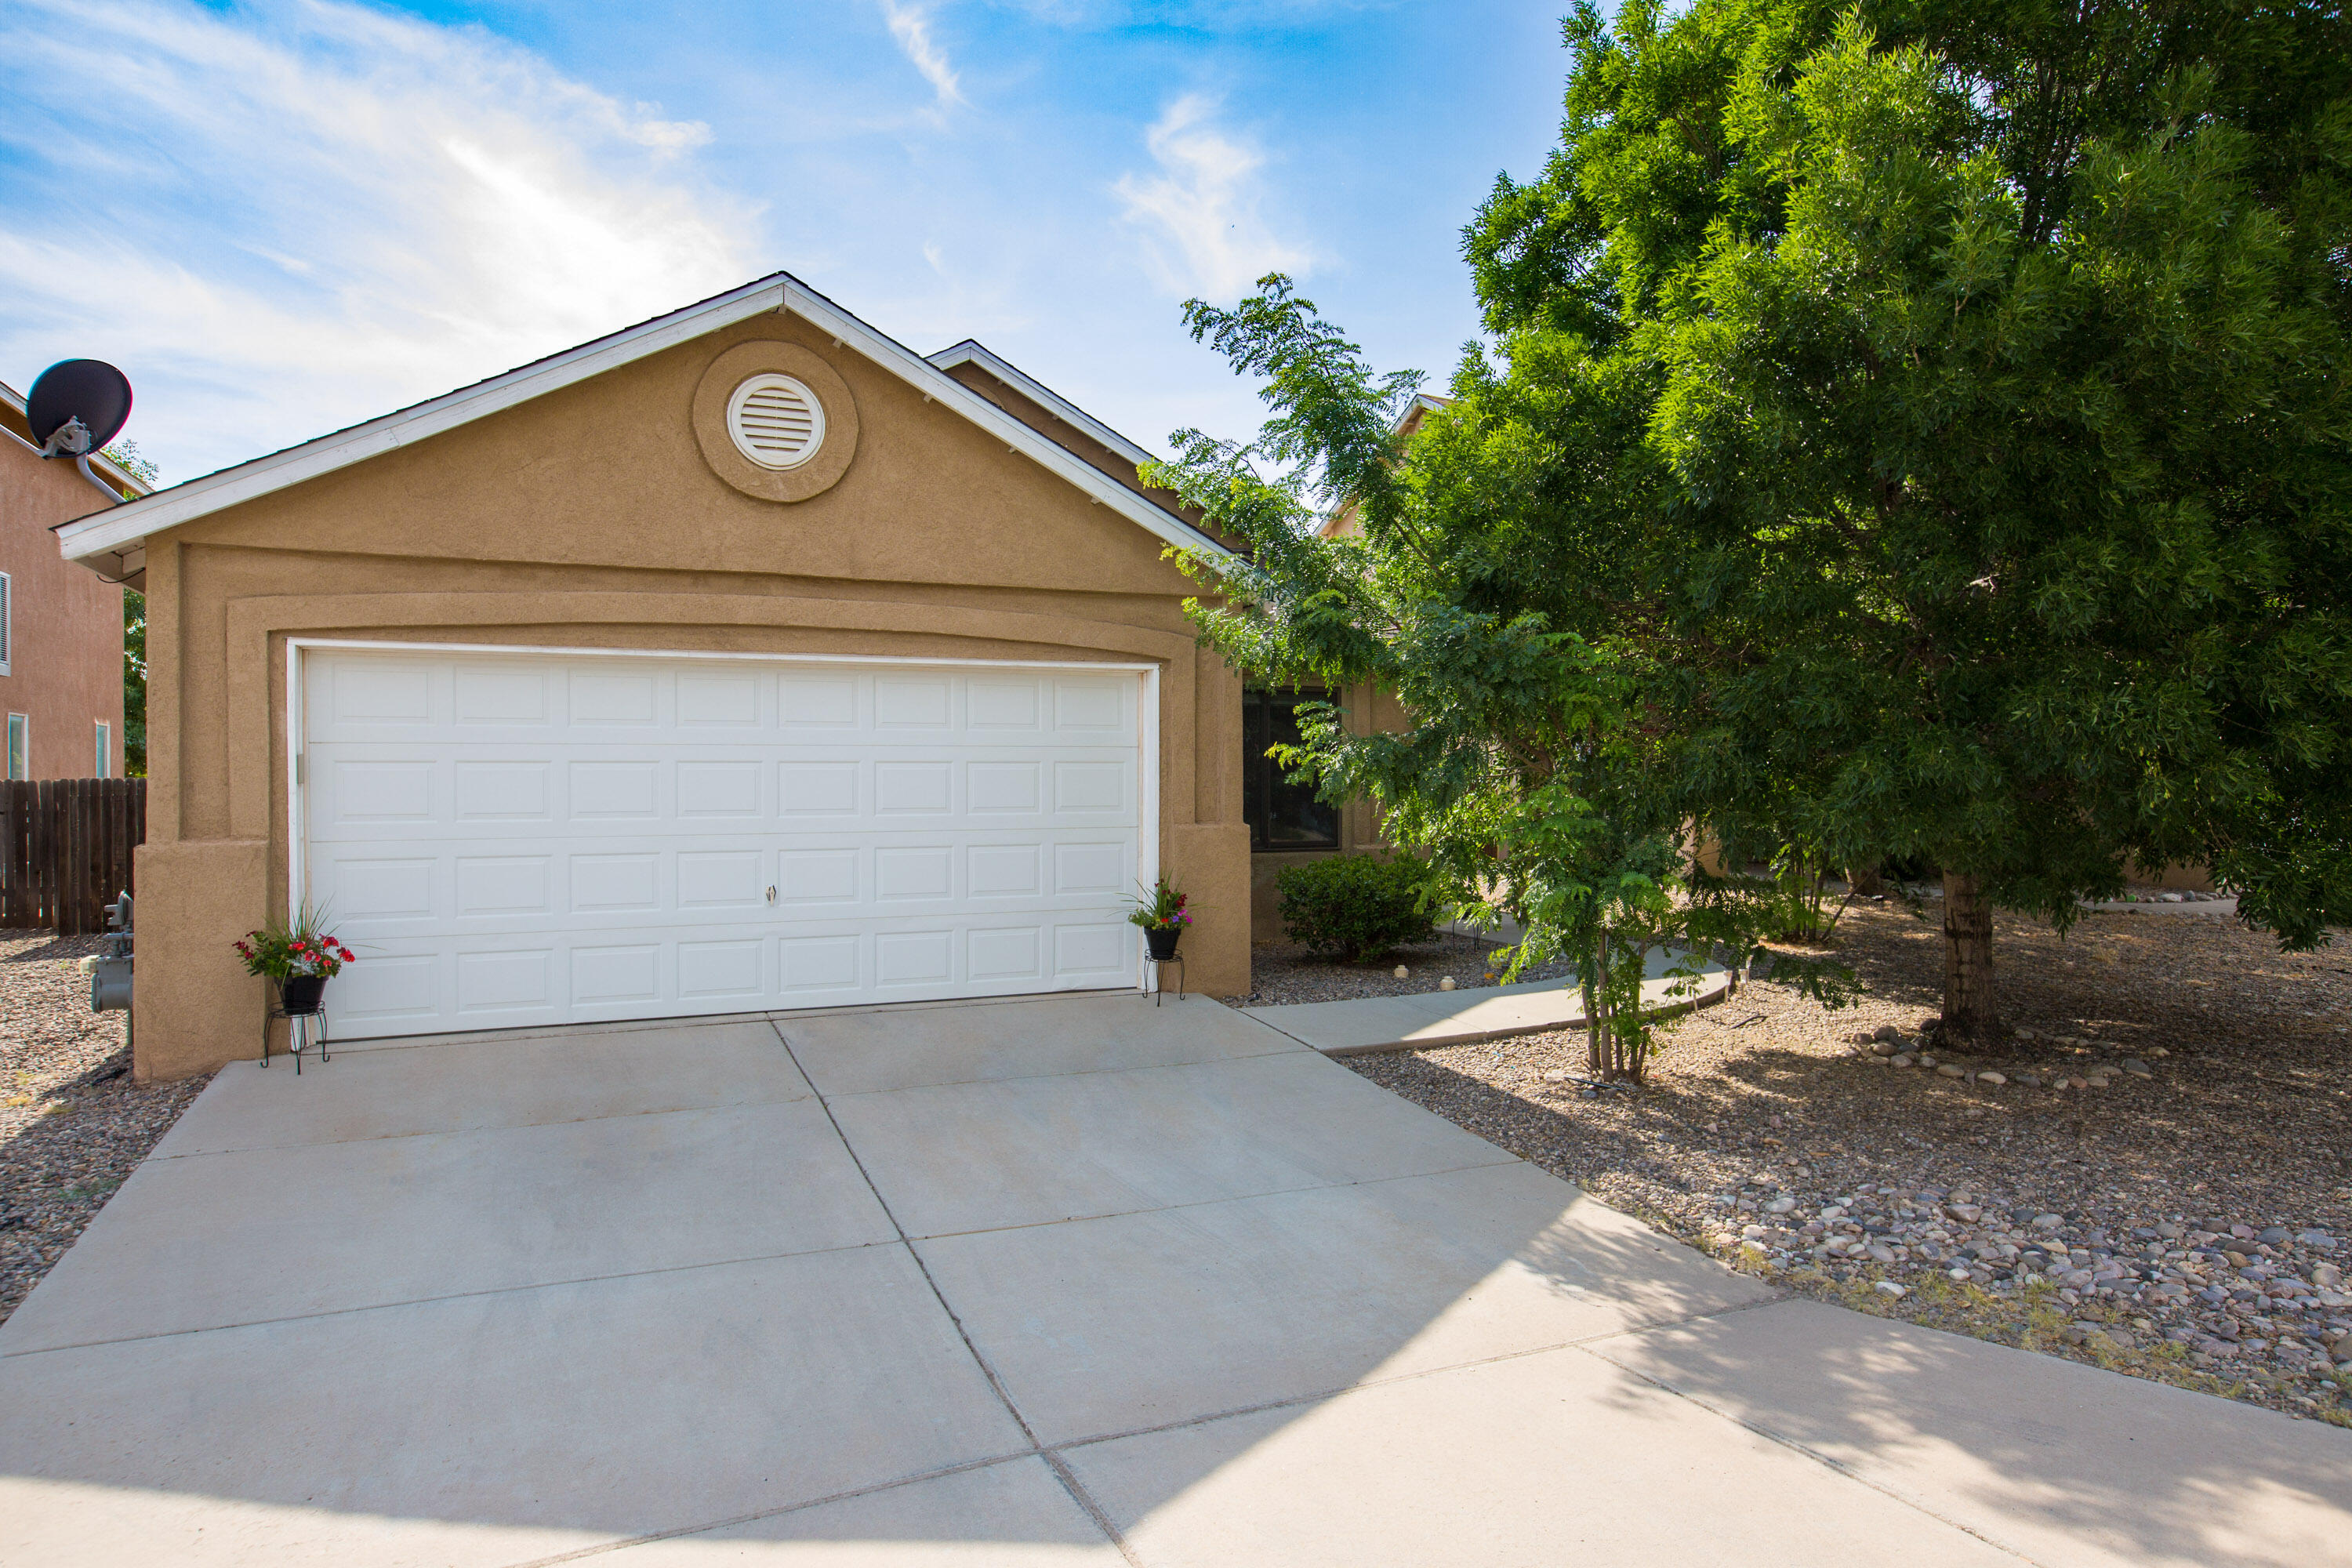 What a find!  You CAN still find a great home at an affordable price. Close to parks and only 6 miles from downtown Albuquerque. This sweet South Valley home is tucked away on a tree lined street. Inside you will find 3 beds and 2 full baths- large master walk in closet. Roof was replaced in June 2021.  Clean and bright you will not want to miss this one.